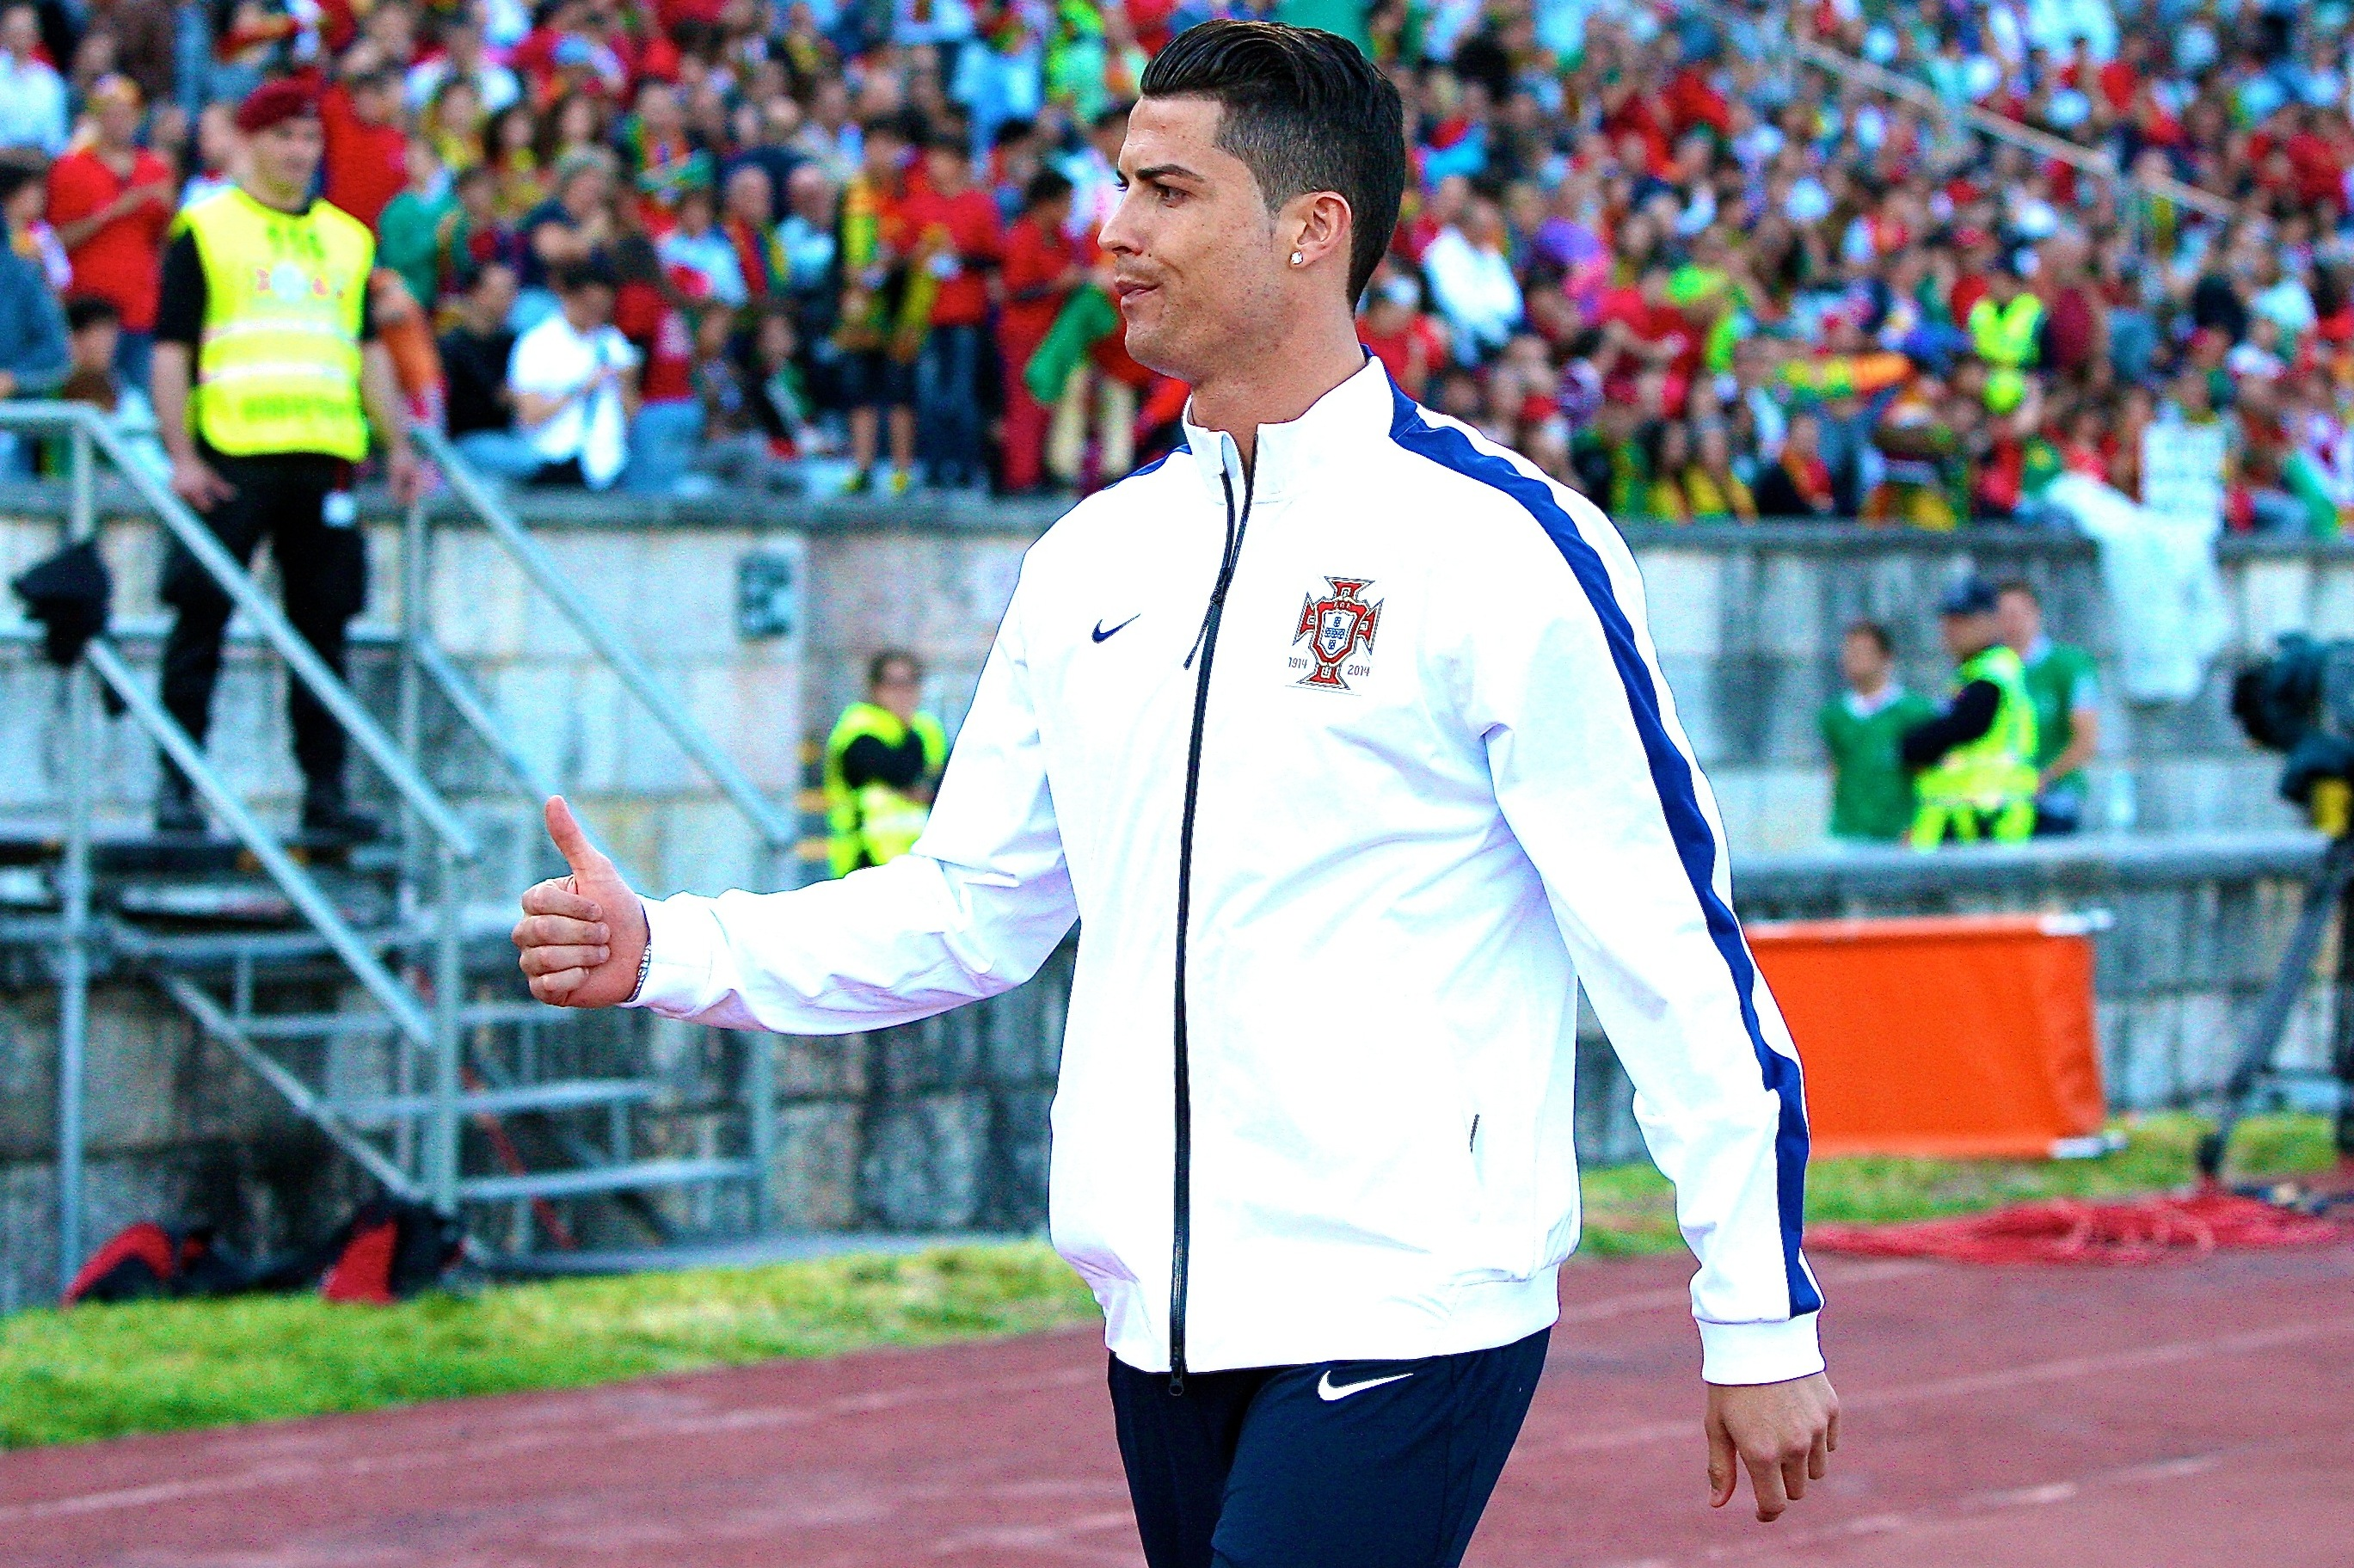 Cristiano Ronaldo Has Unusual Knee Condition Puts Portugal In Tough Position Bleacher Report Latest News Videos And Highlights